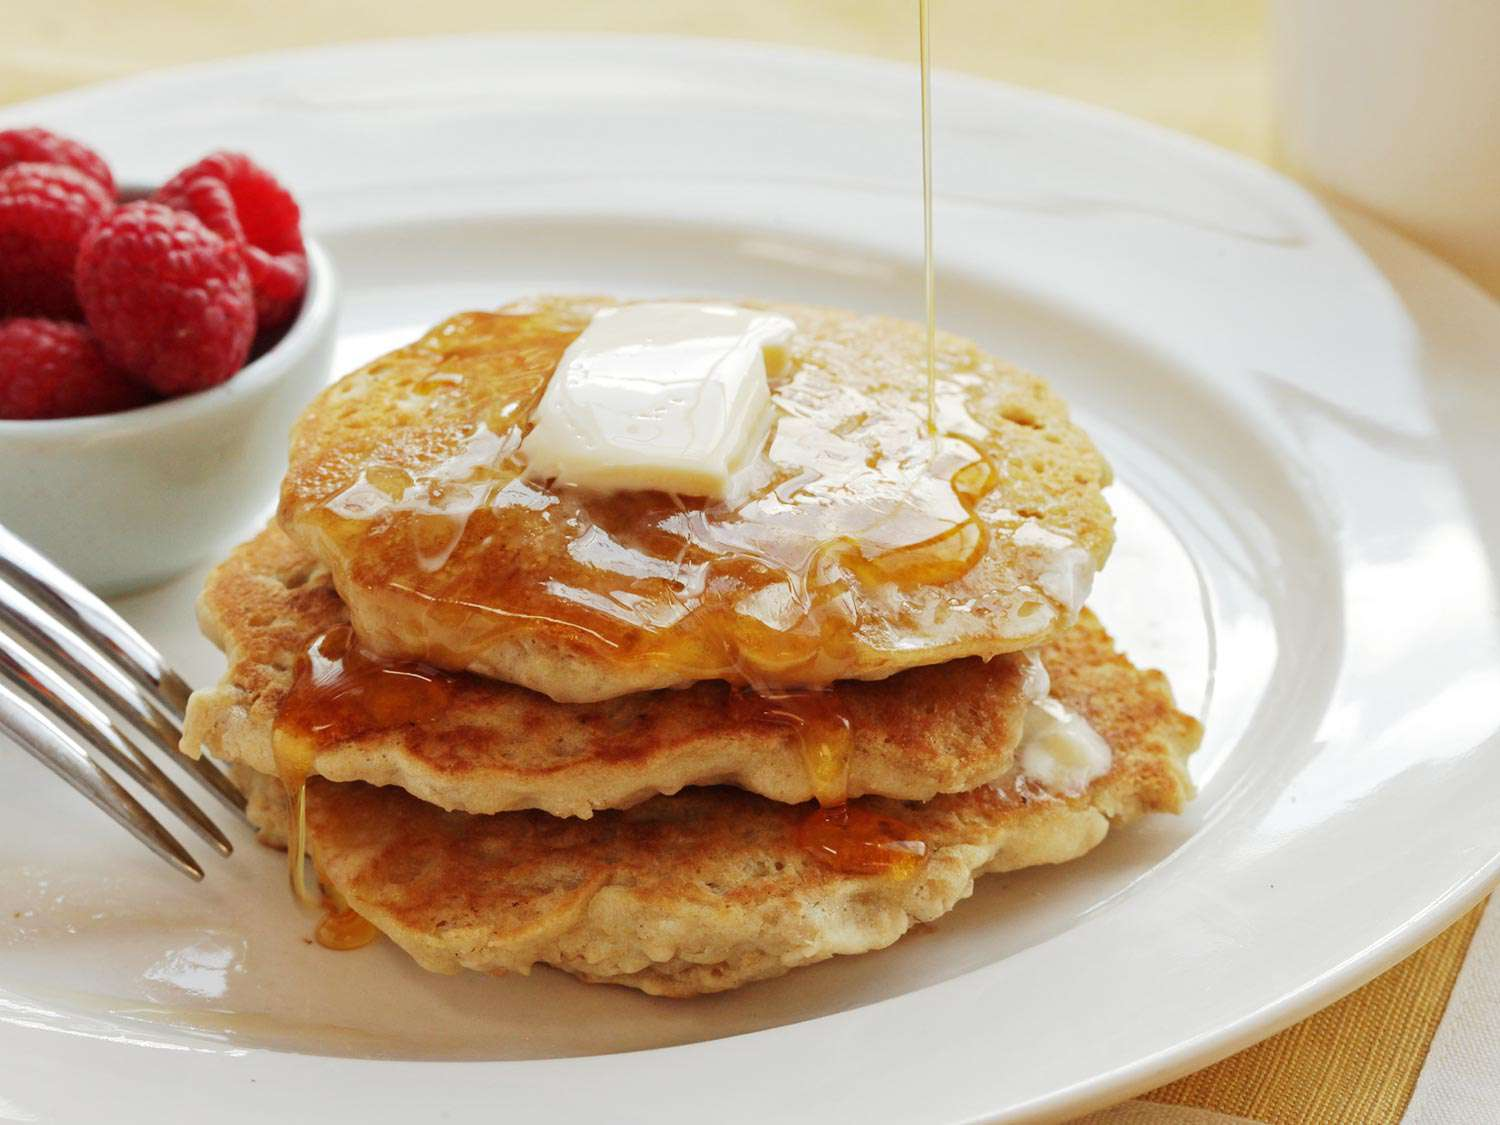 A stack of vegan oatmeal pancakes with syrup and butter. A small dish of raspberries is next to the pancakes.